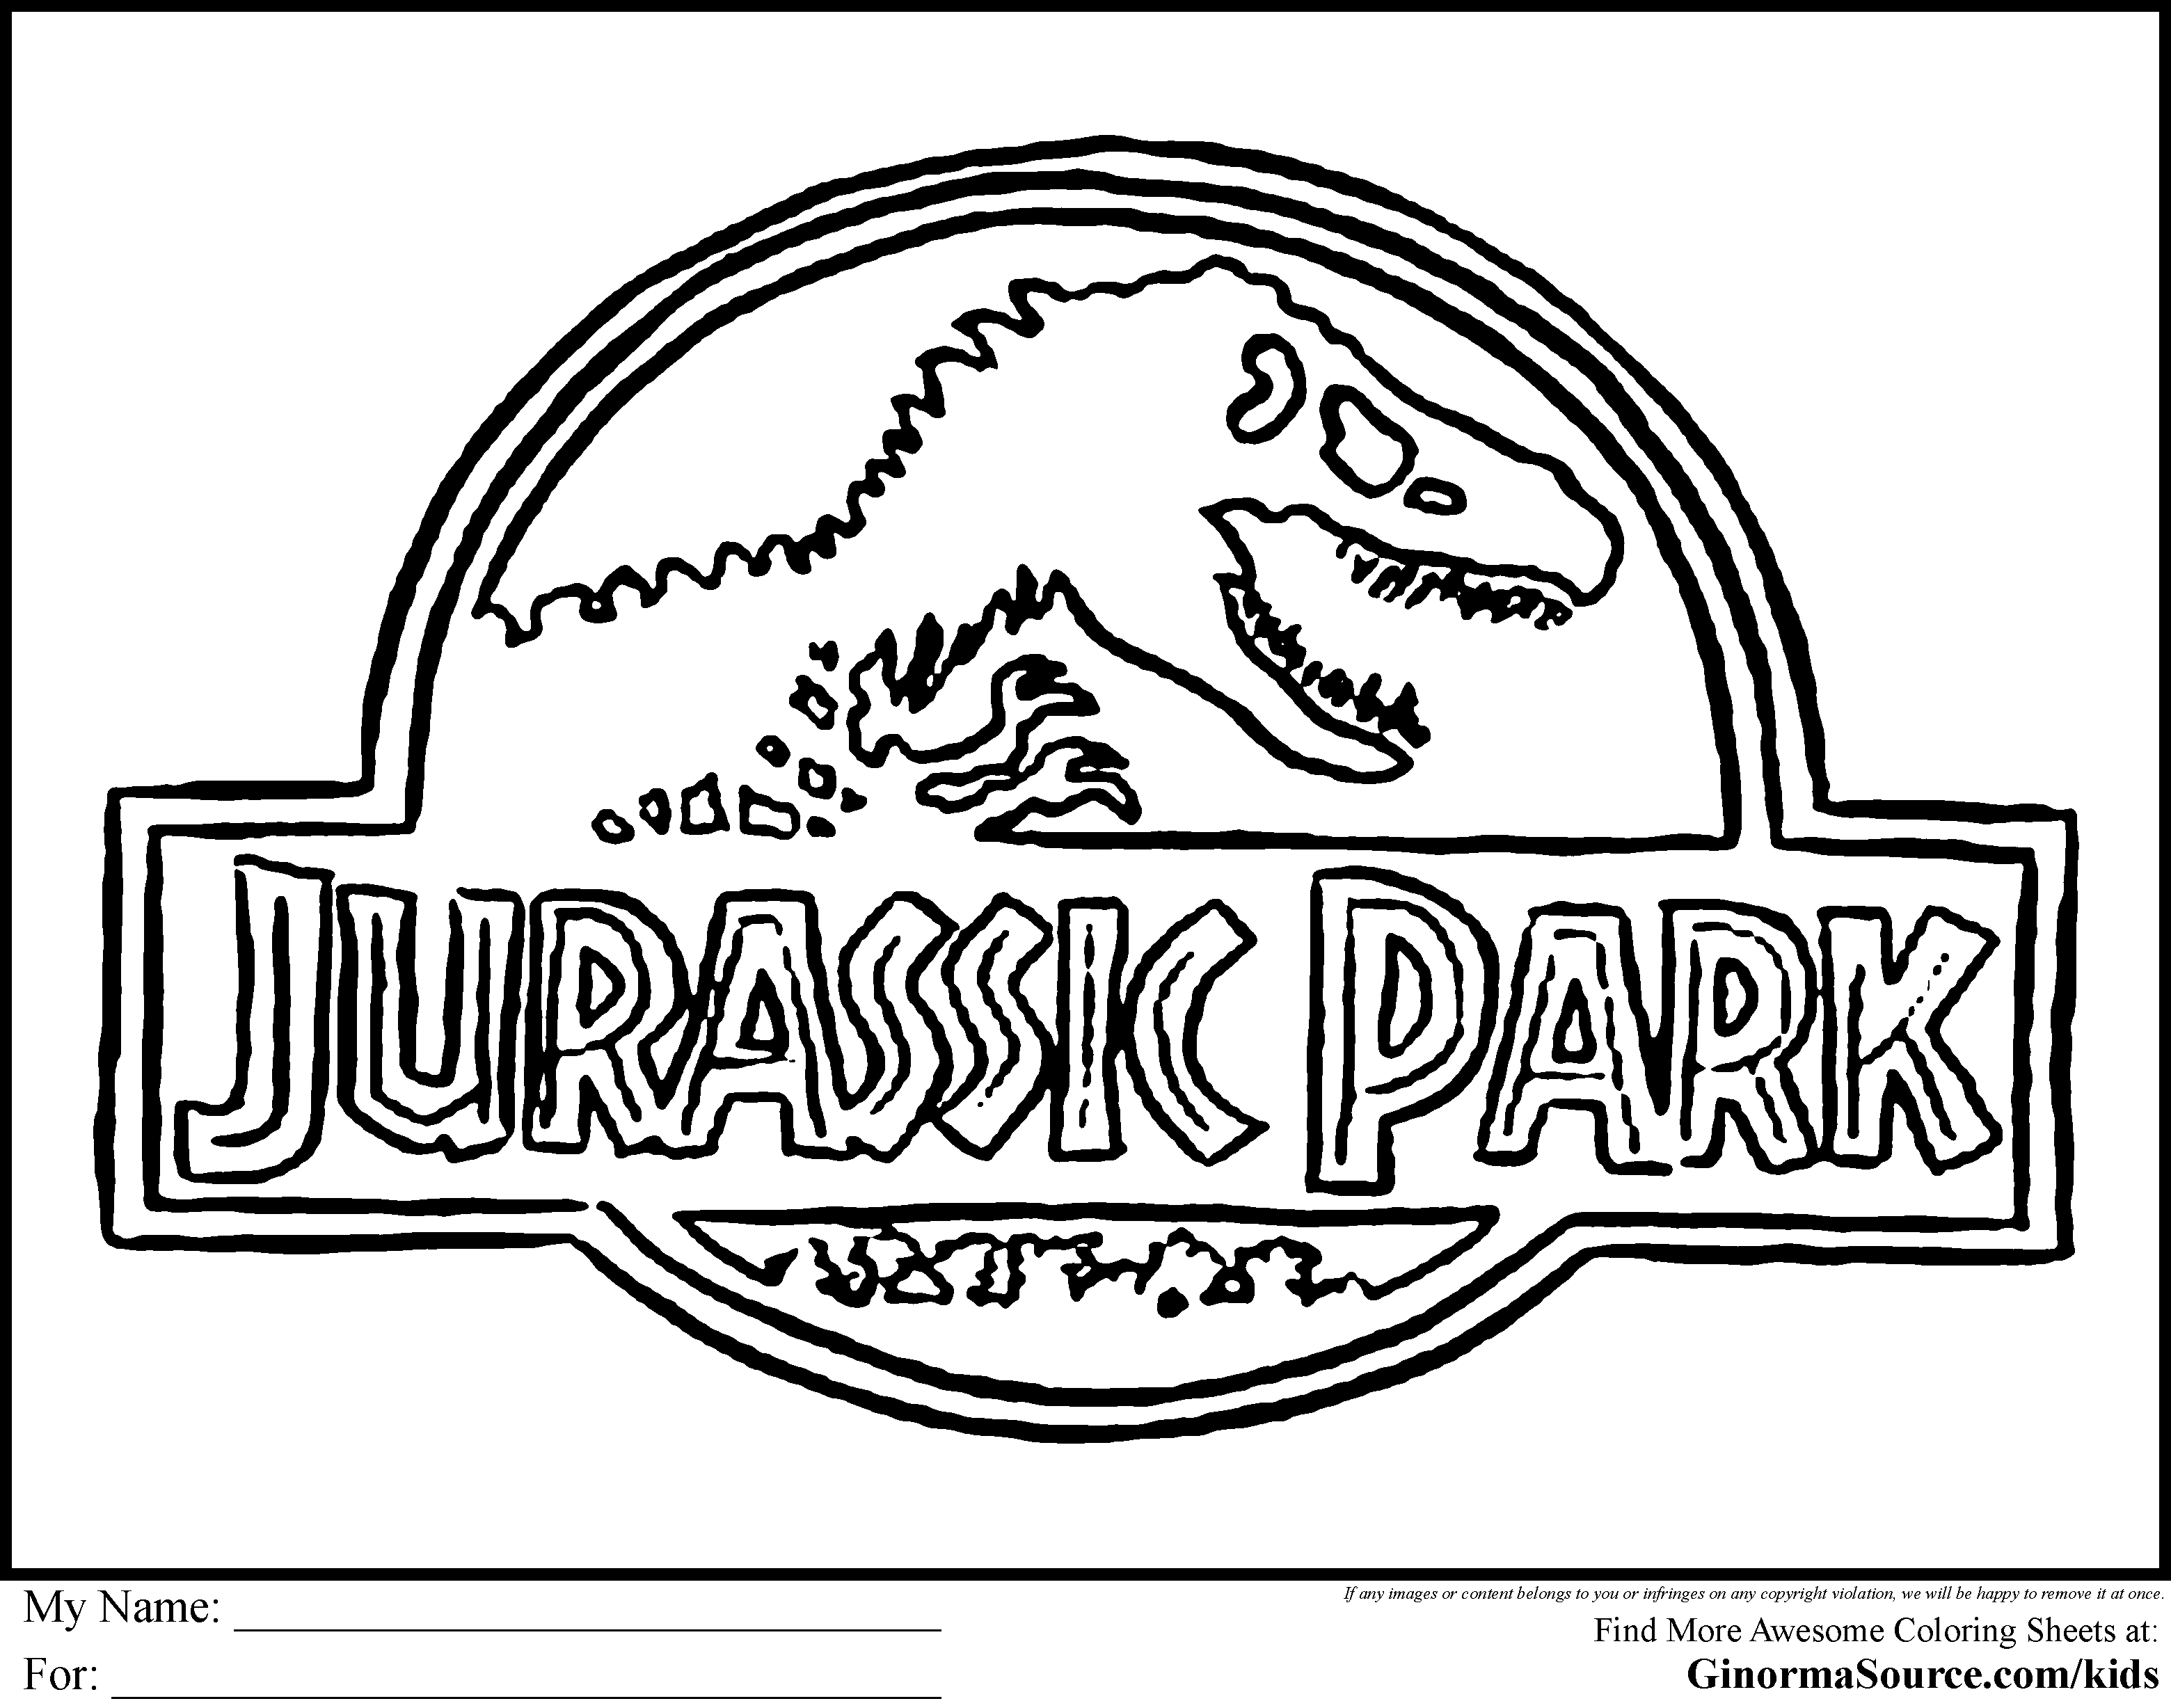 jurassic park coloring pages - Google Search | Cameo Crafting ...